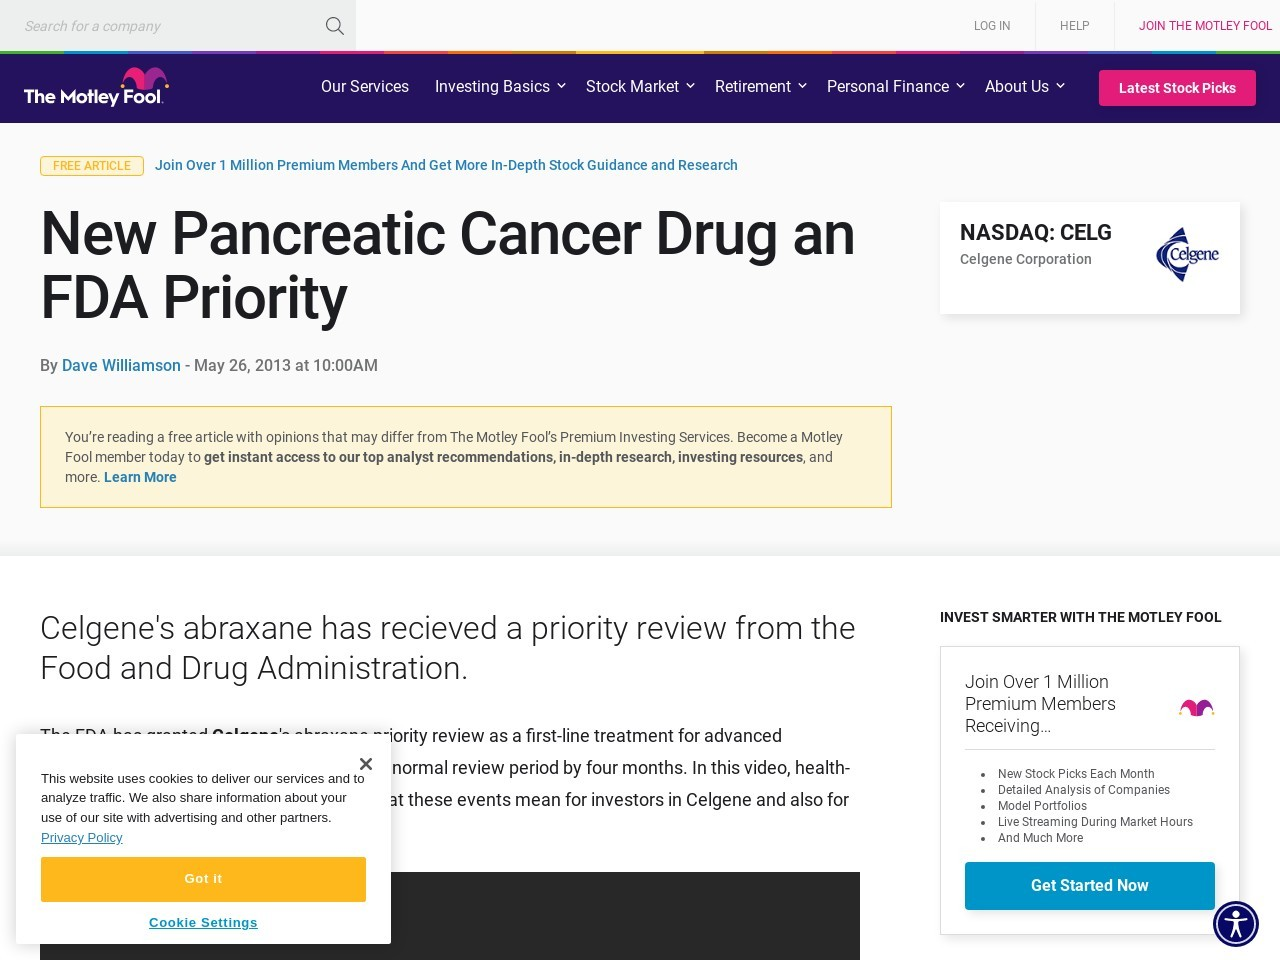 New Pancreatic Cancer Drug an FDA Priority